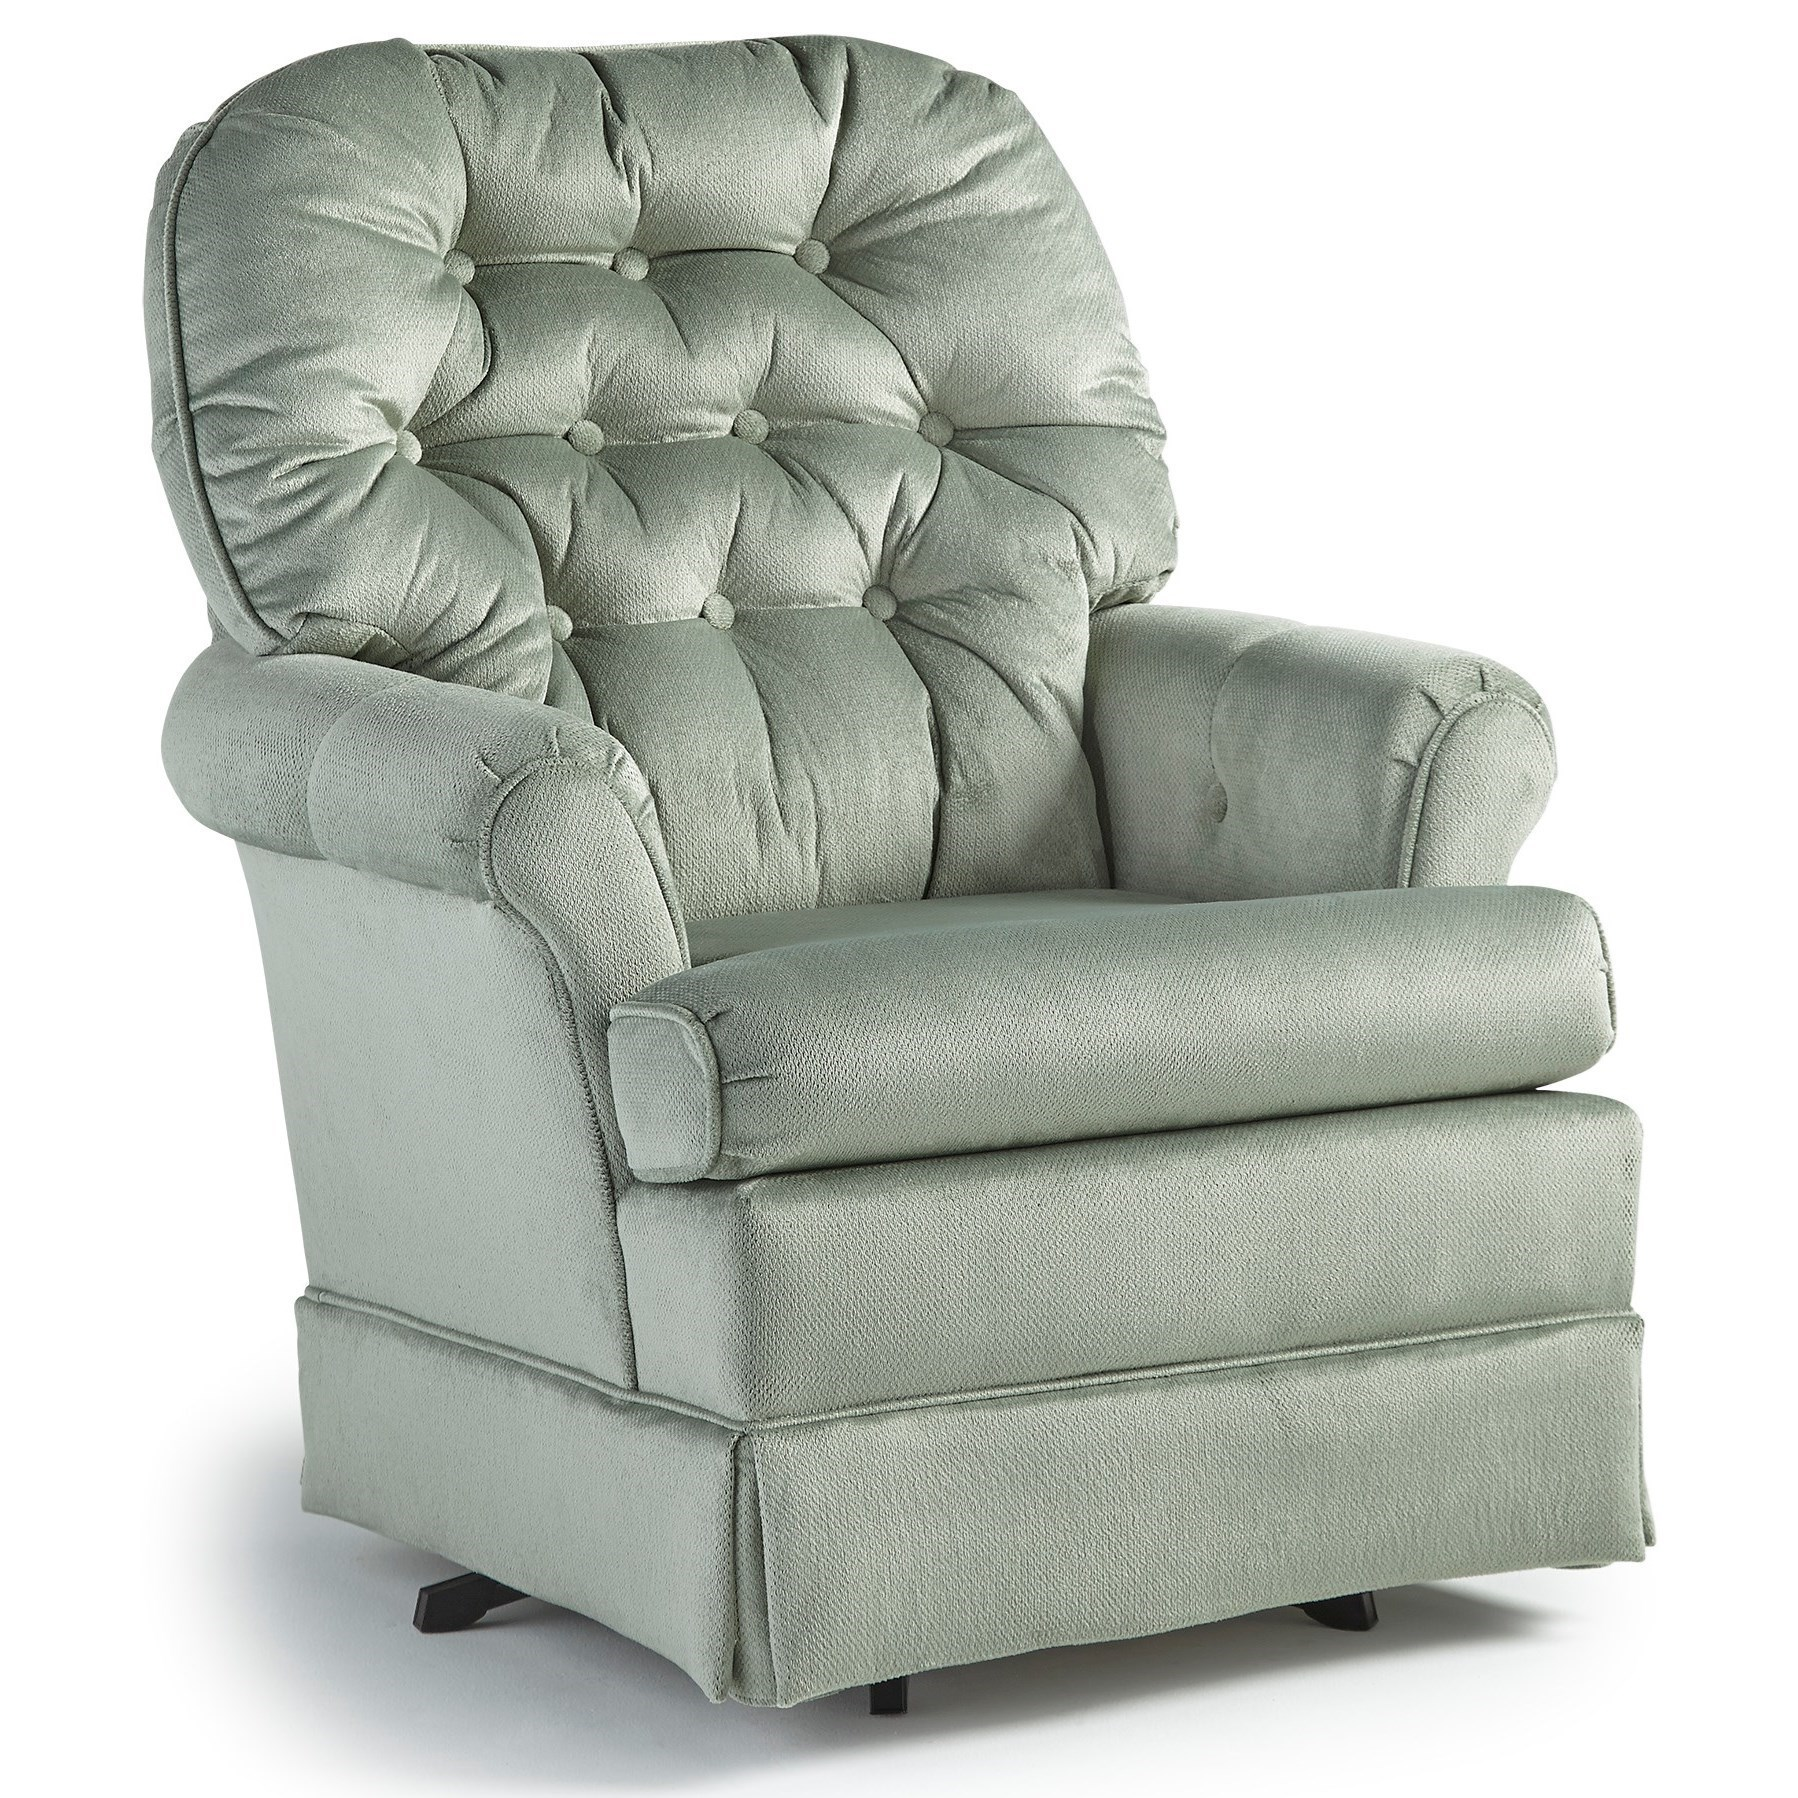 swivel and rocking chairs. Best Home Furnishings Chairs - Swivel GlideMarla Rocker Chair And Rocking